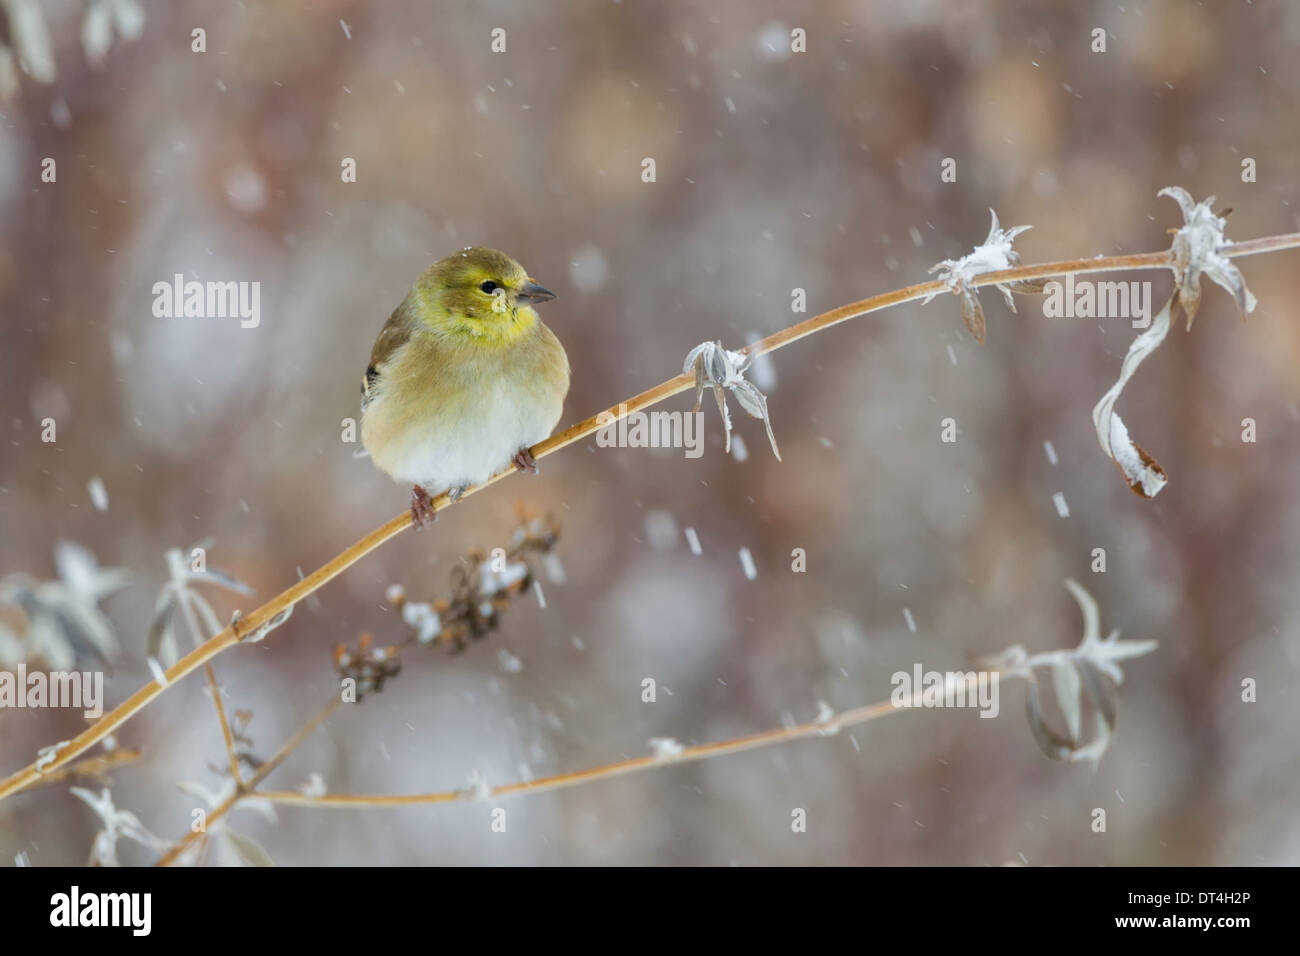 Goldfinch winter colors in snow storm - Stock Image